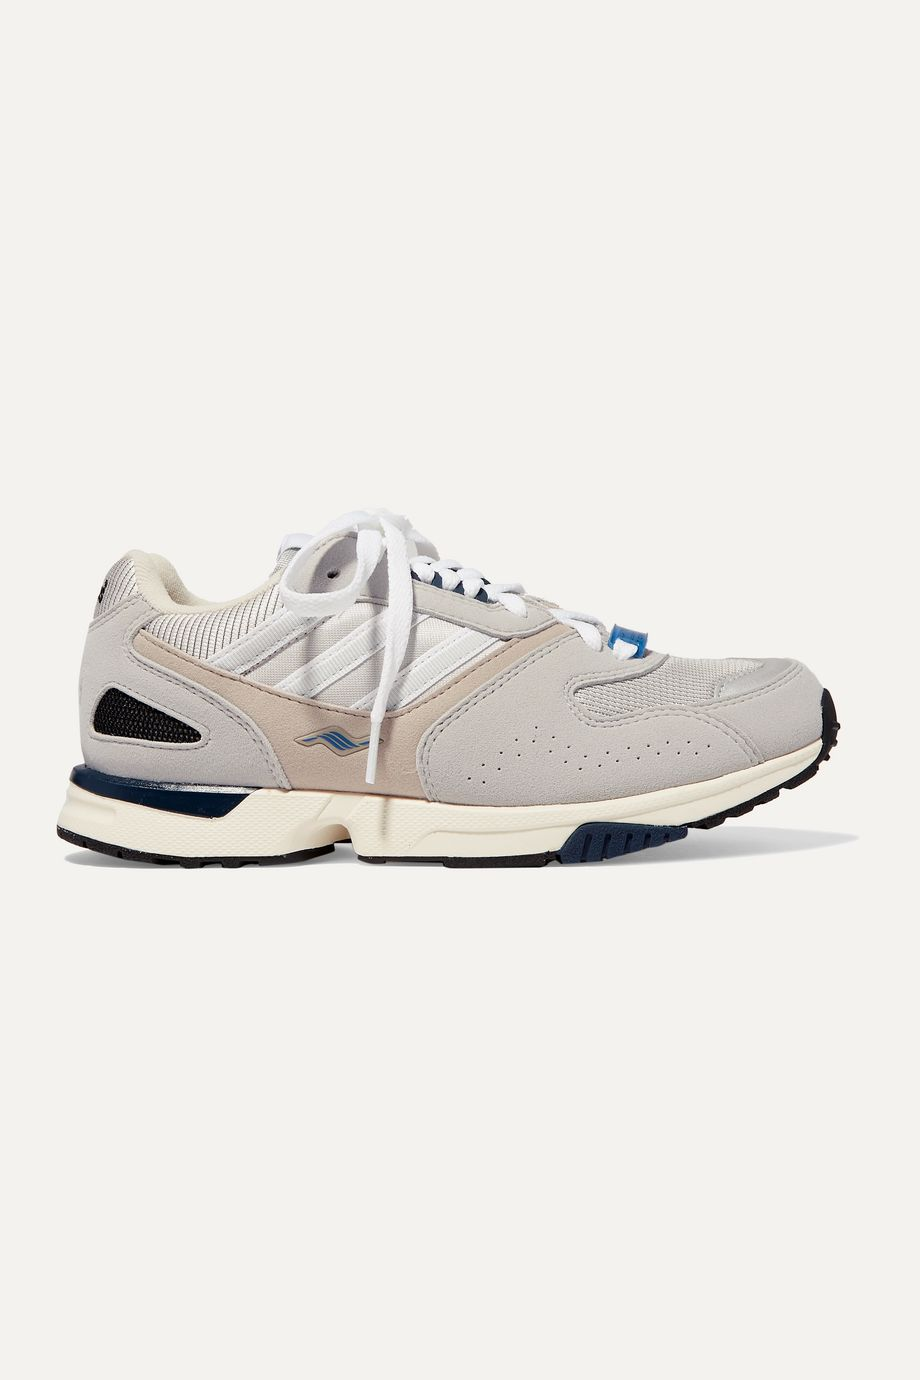 adidas Originals ZX 4000 suede and mesh sneakers